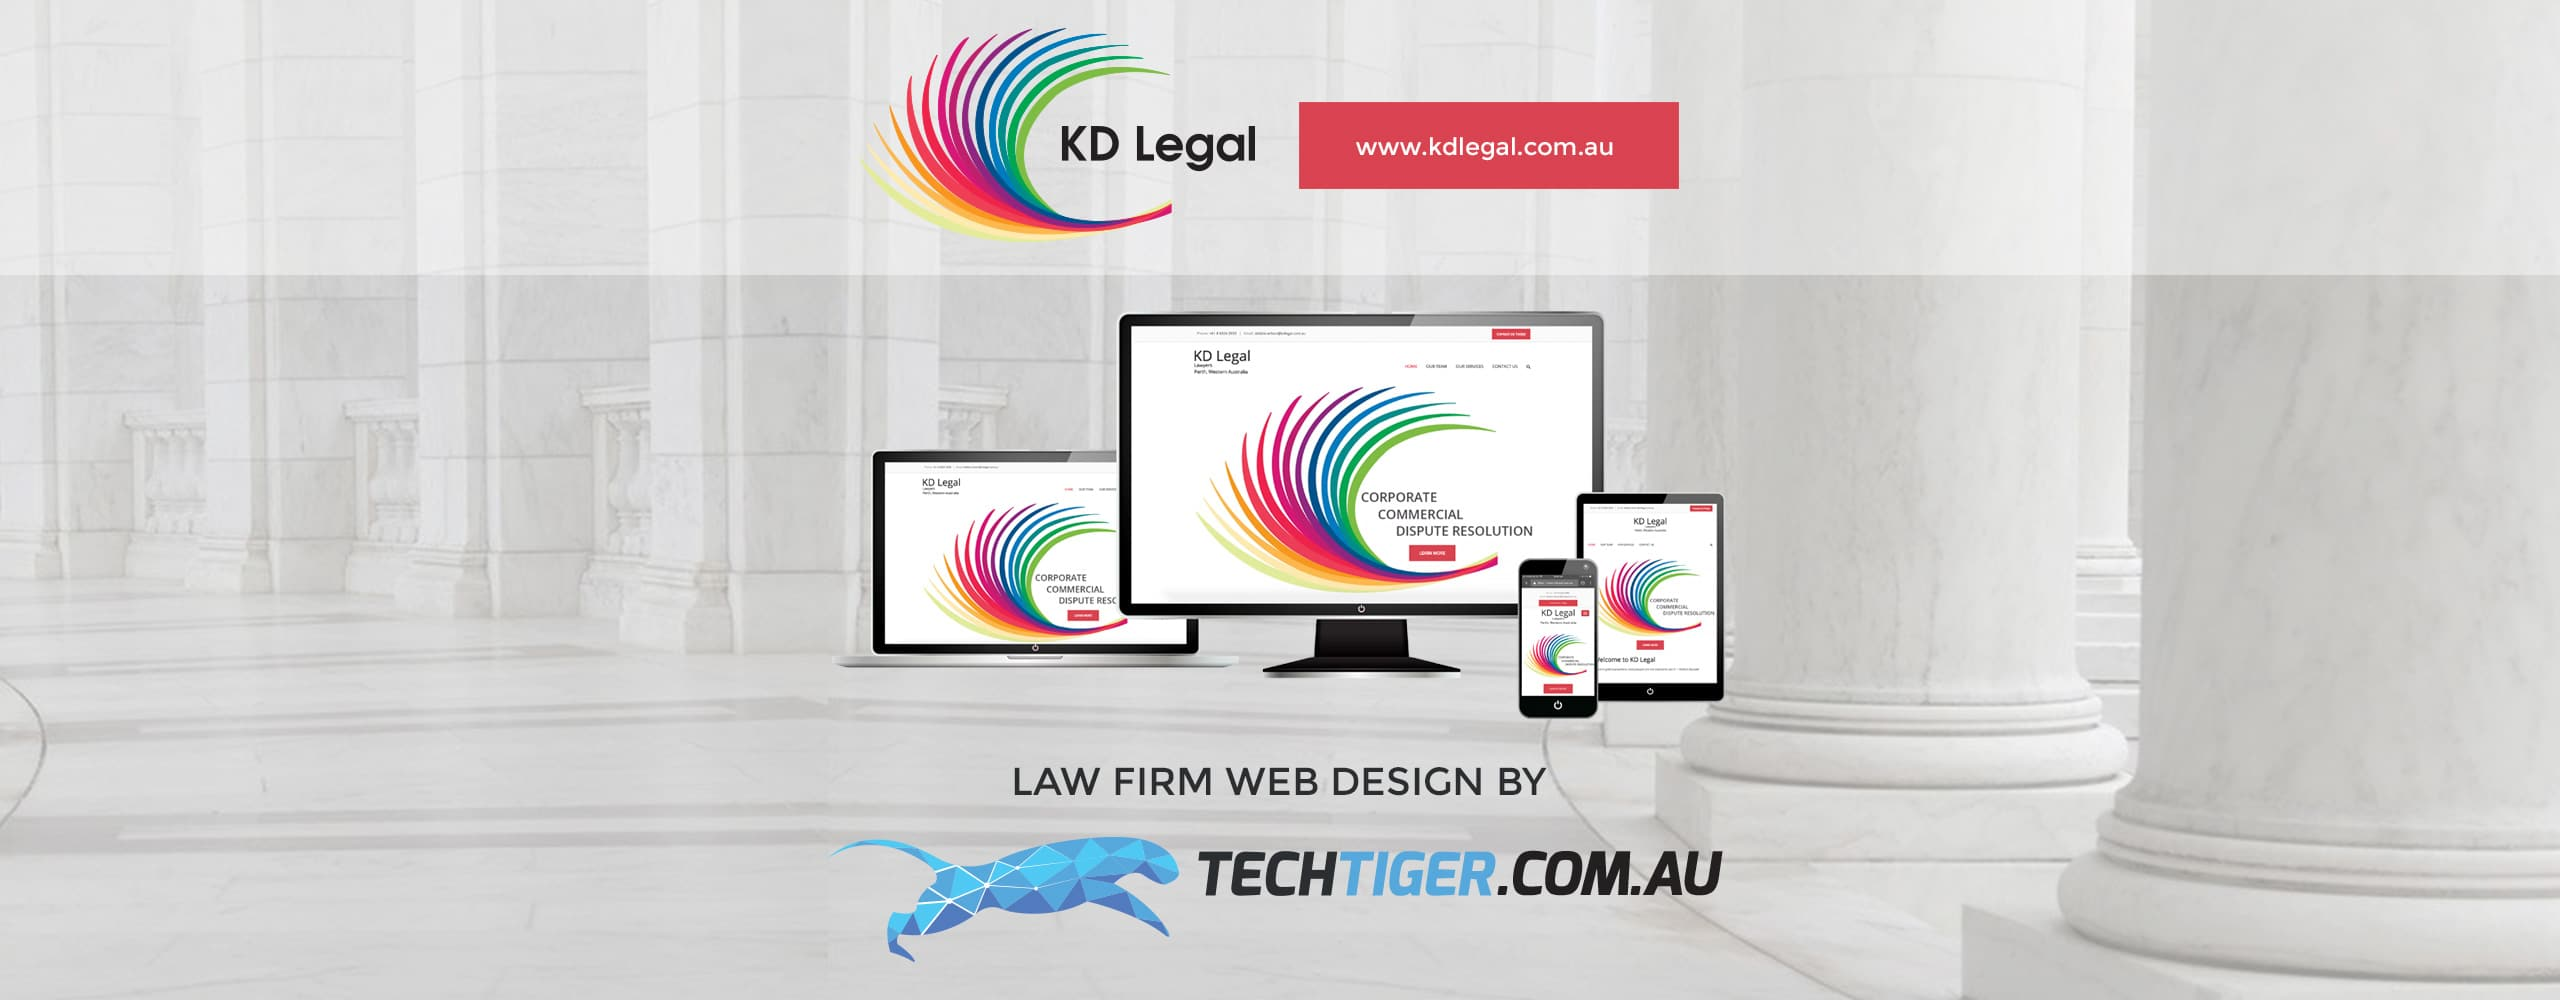 TechTiger: KD Legal law firm website design